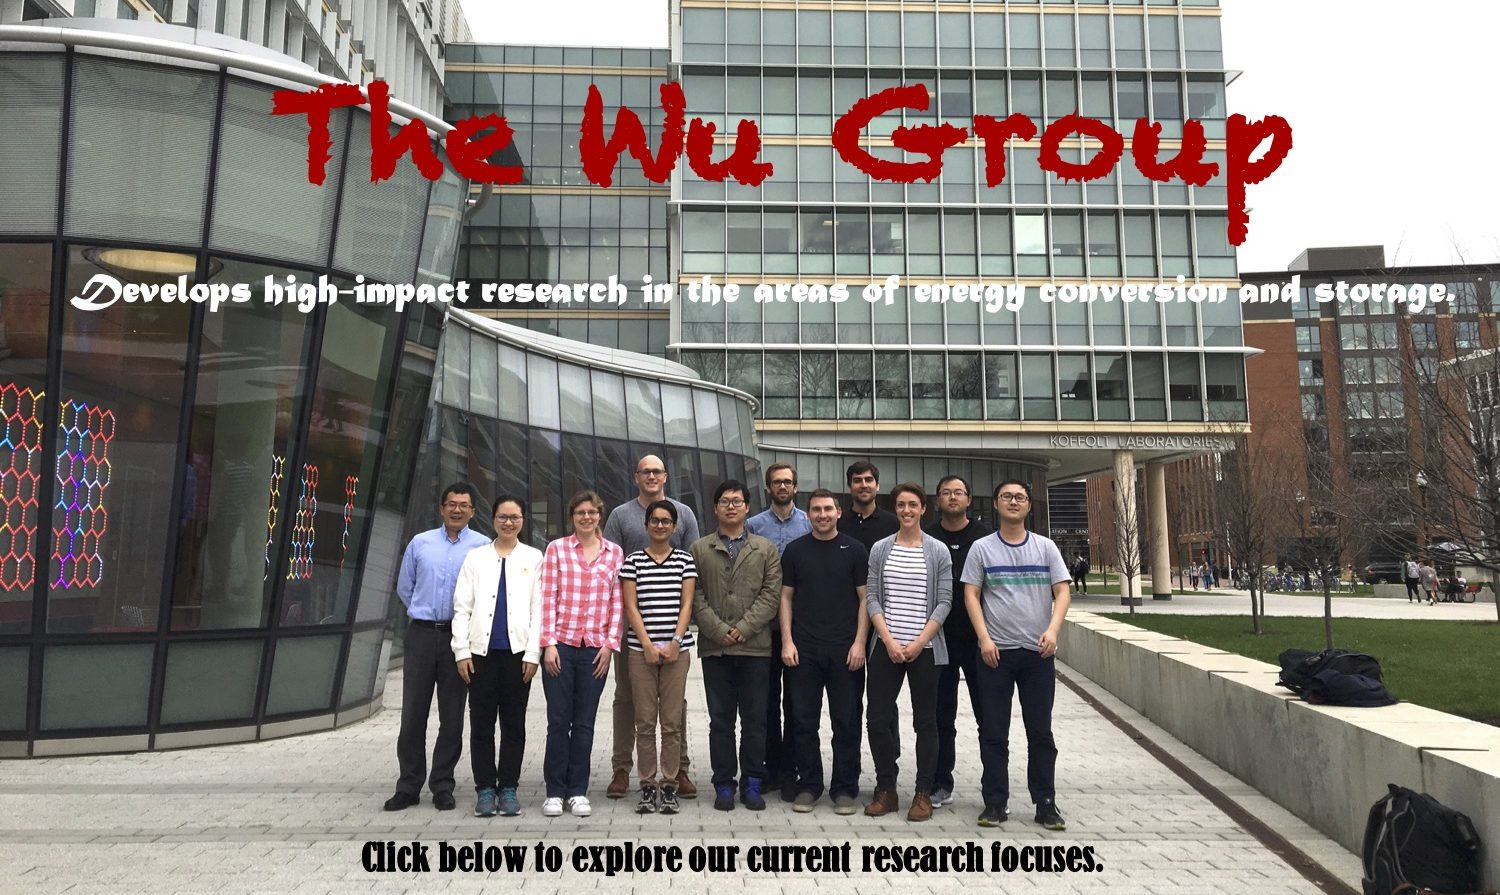 Wu Group